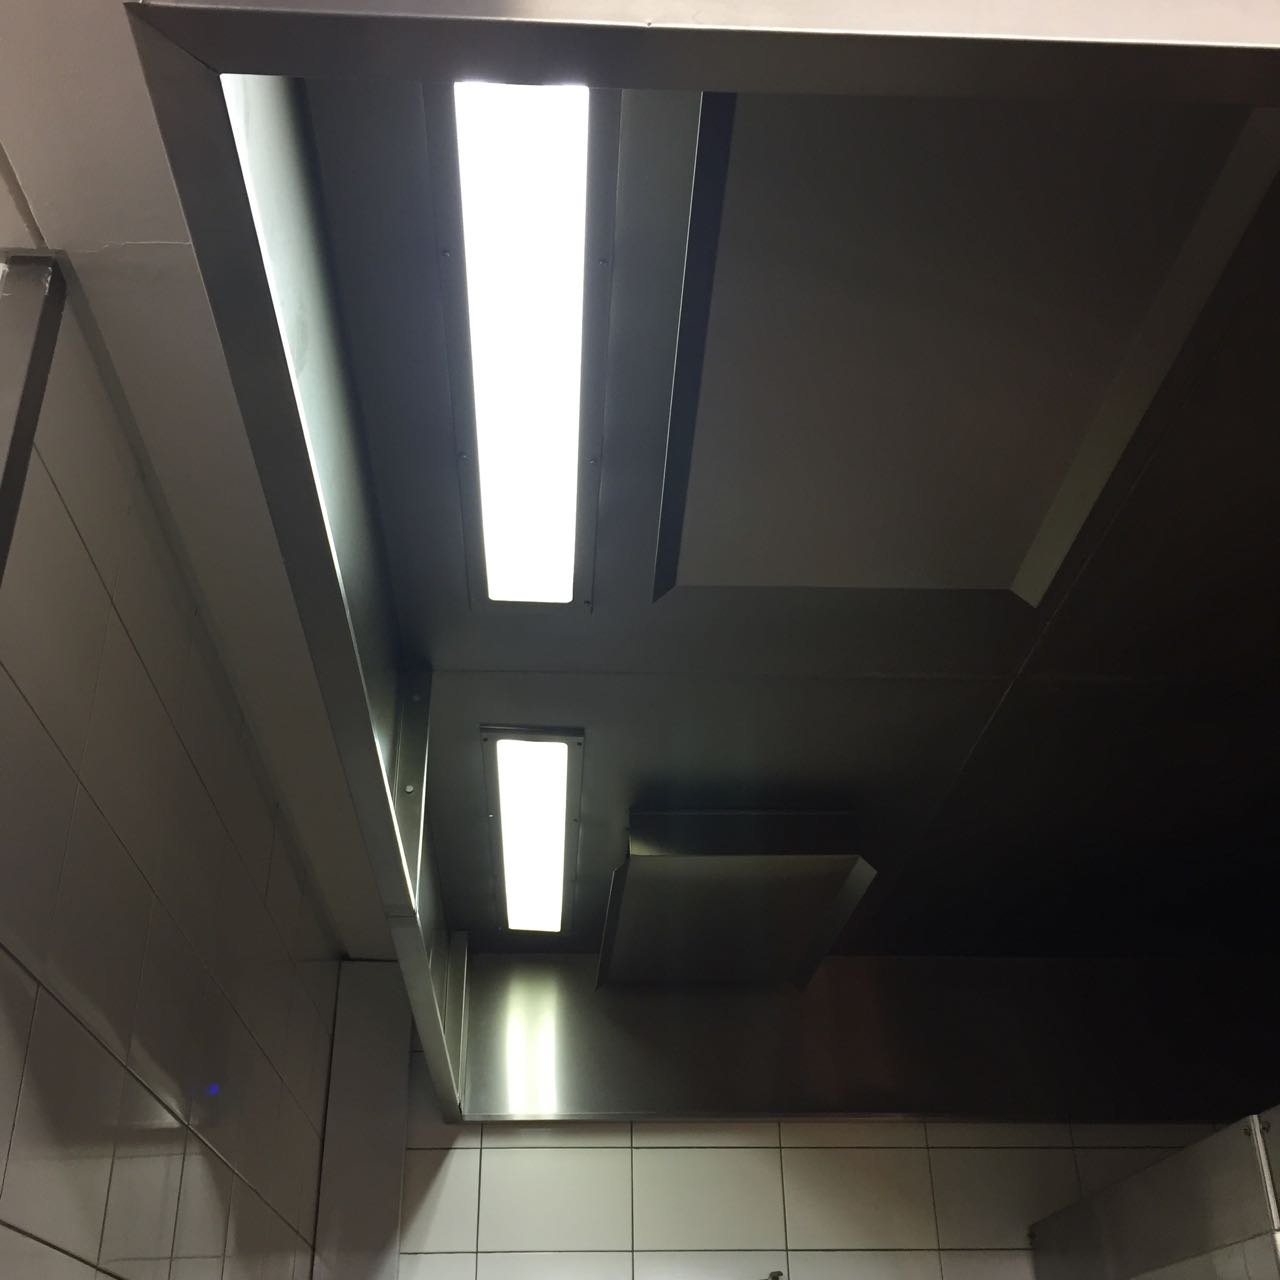 Airvent Airconditioning & Ventilation: Extraction Canopy